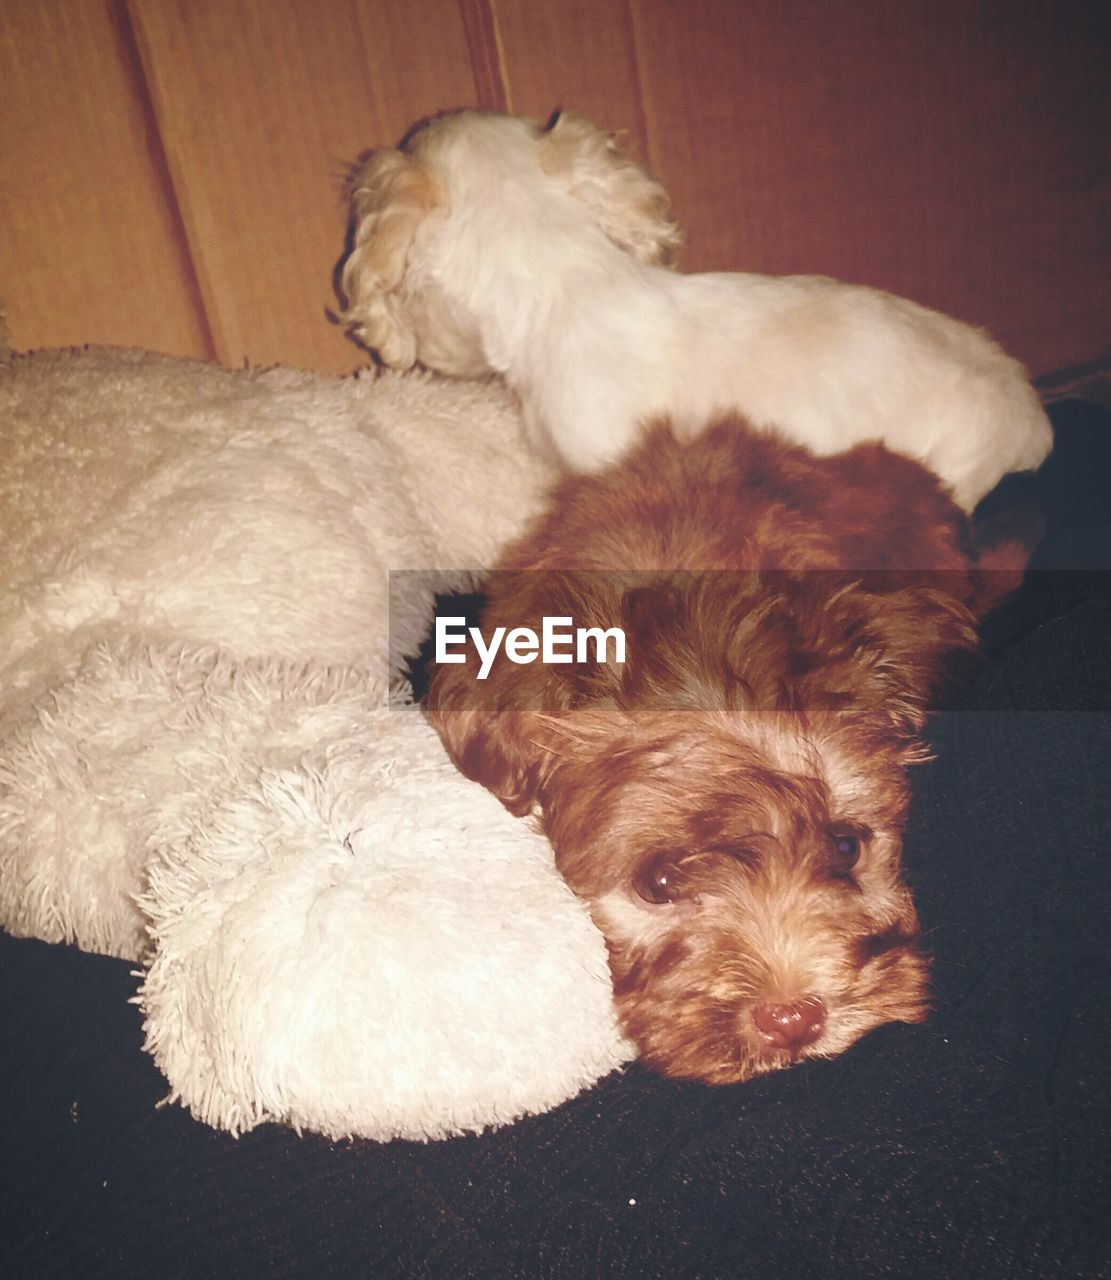 dog, pets, domestic animals, mammal, animal themes, one animal, indoors, animal hair, sleeping, lying down, relaxation, puppy, no people, close-up, day